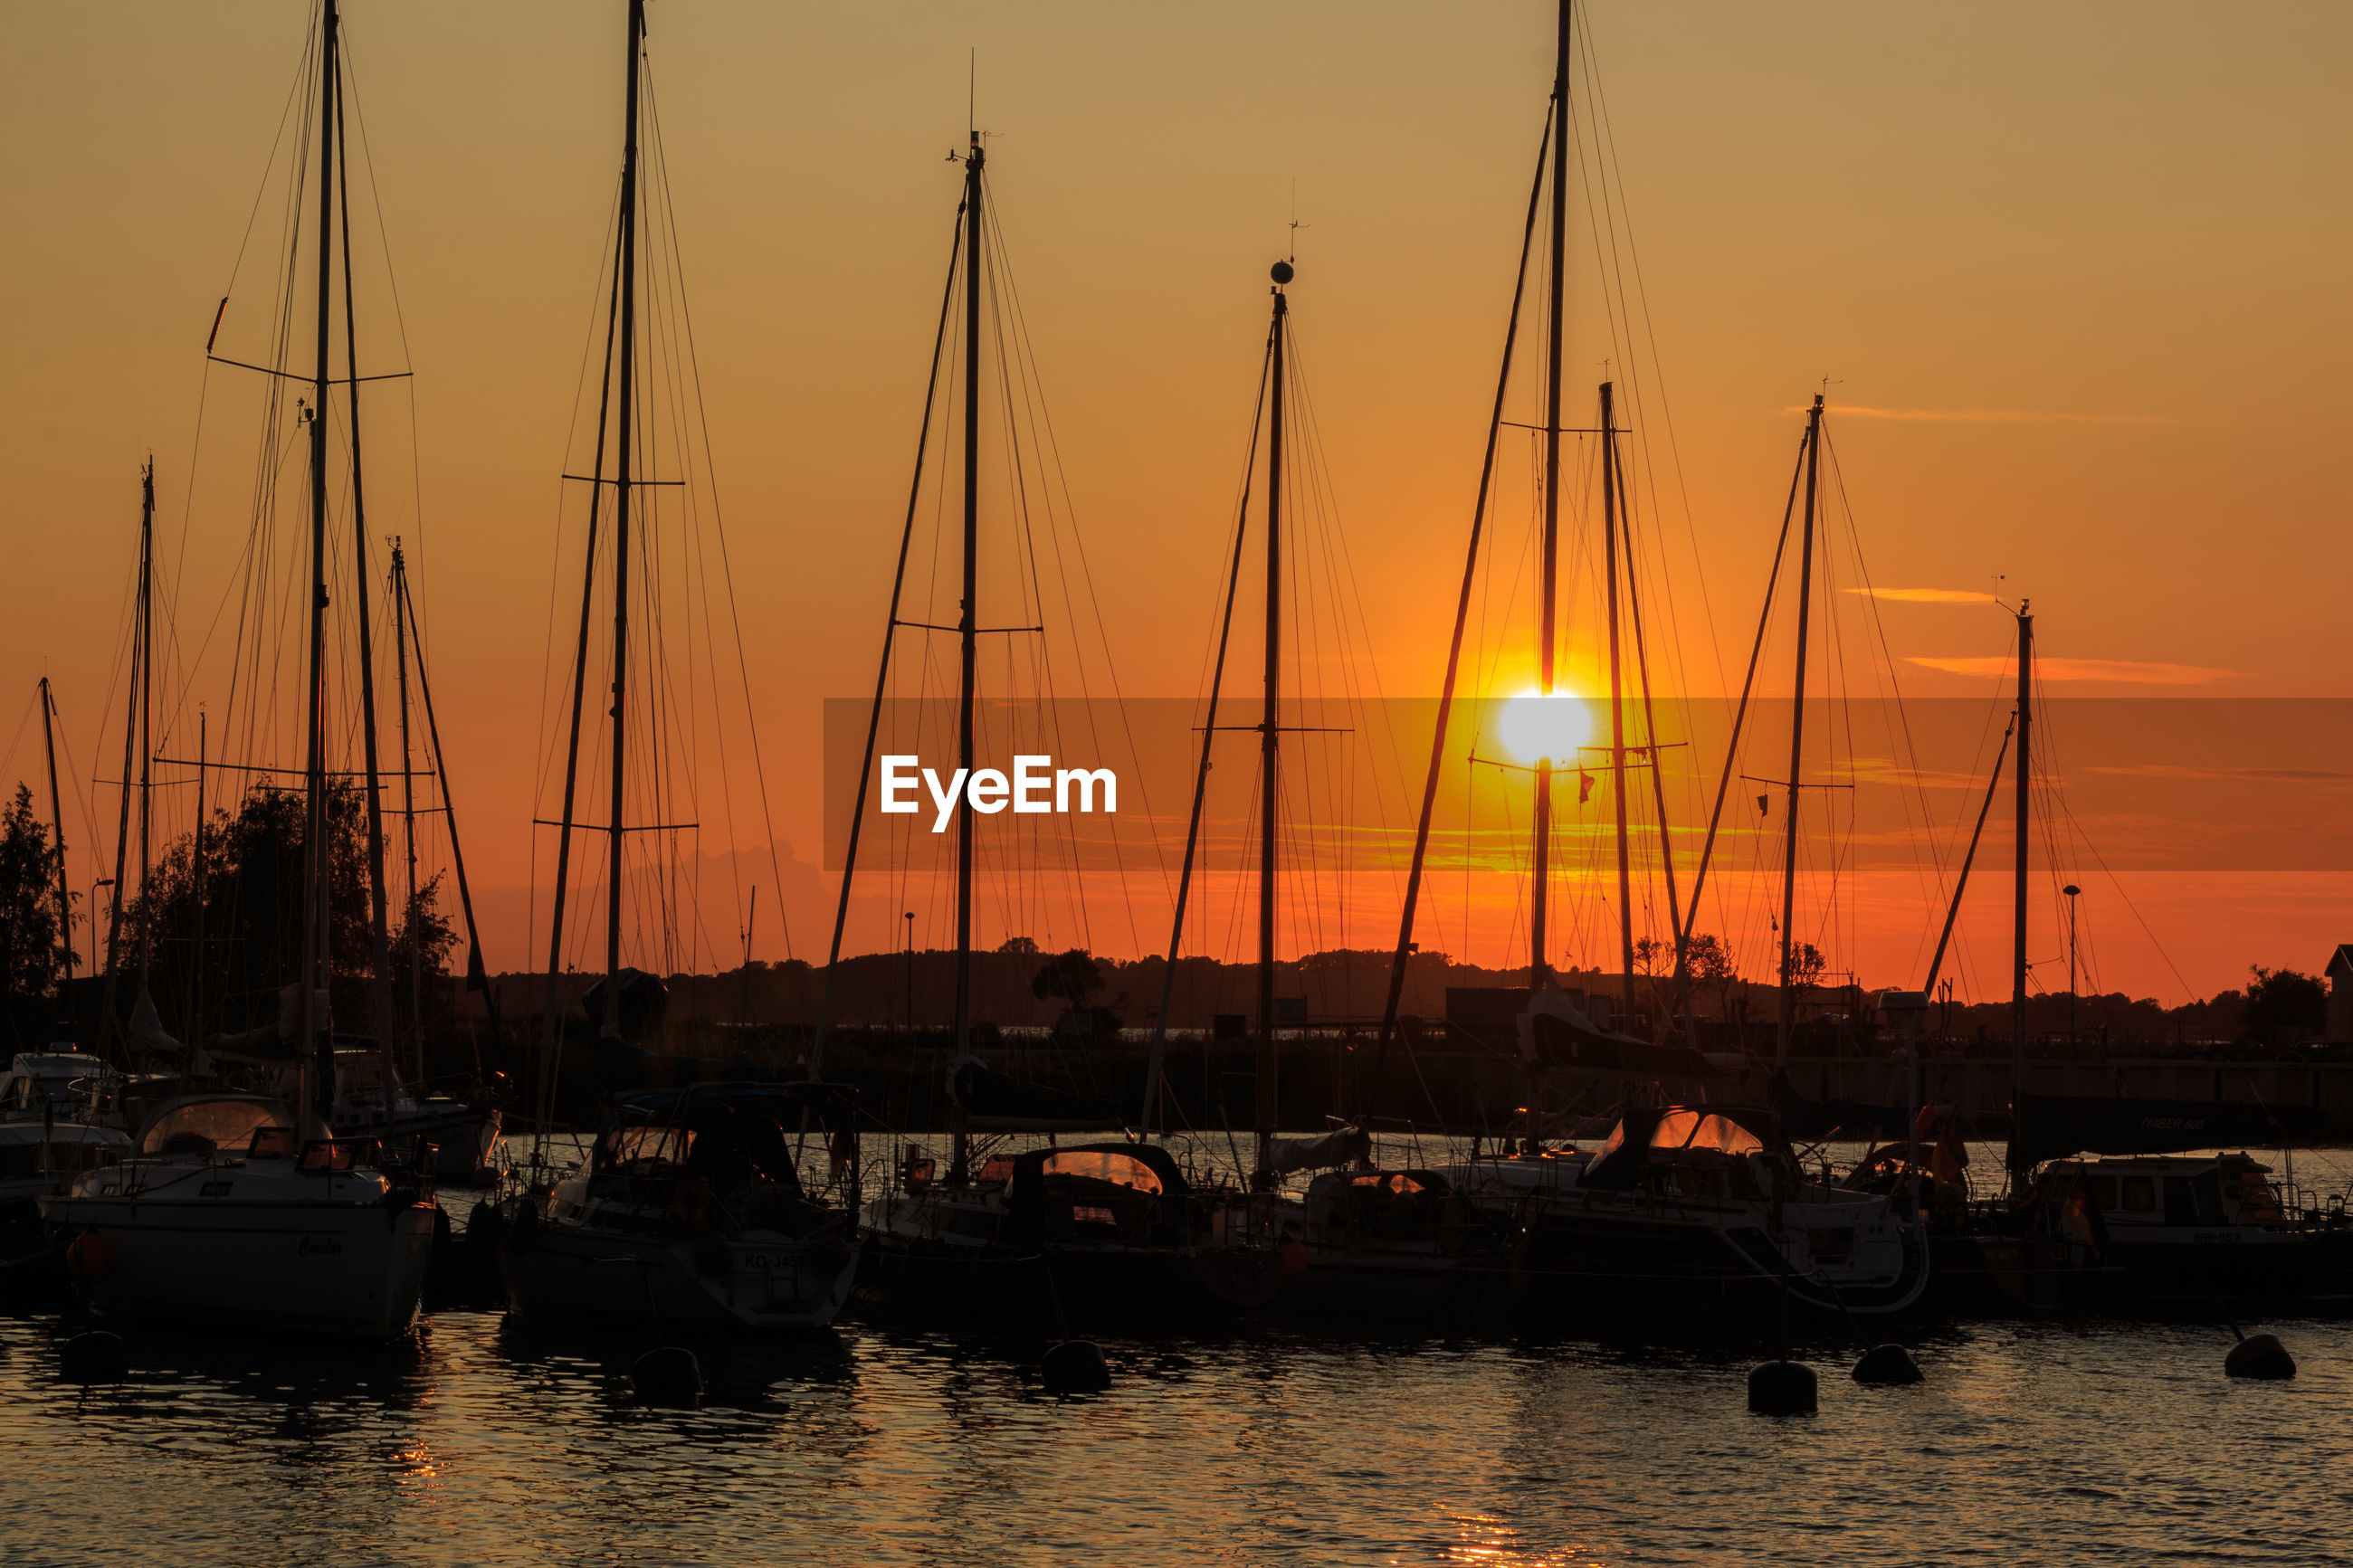 SAILBOATS MOORED AT HARBOR AGAINST ORANGE SKY